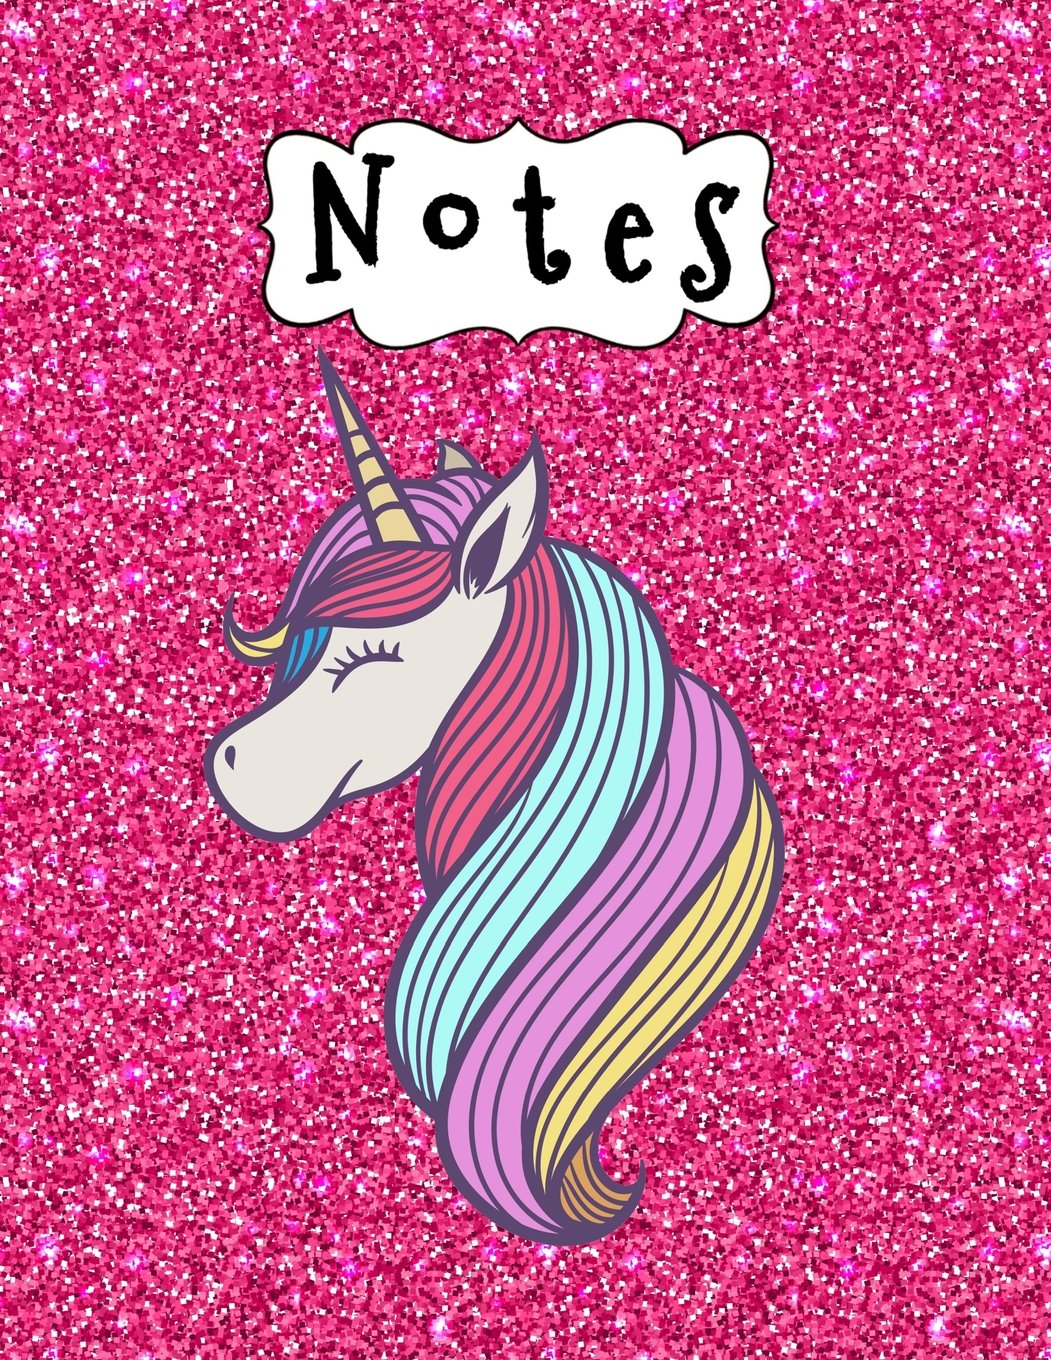 Notes Cute Unicorn On Pink Glitter Effect Background Large Lined Notebook For Girls 110 Pages 8 5 X 11 For Keeping Notes Journal Writing Creative Writing Unicorn Pictures Notebooks Pinkcrushed Sketchbooks Pinkcrushed 9781986564427